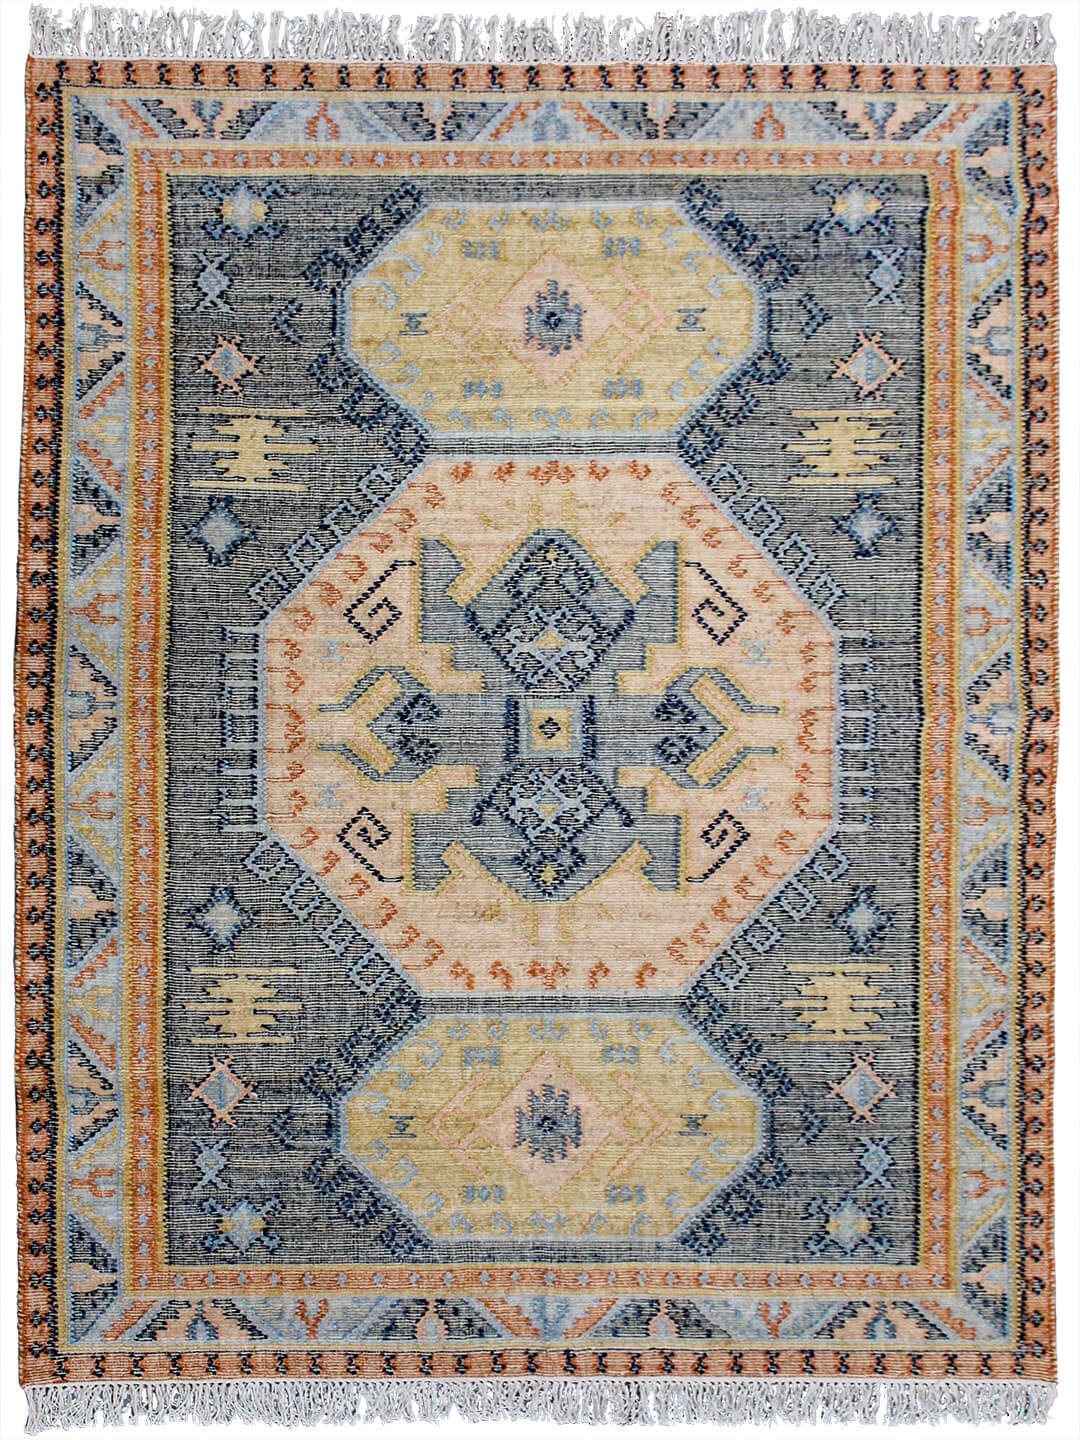 boho-ballina-detail-floor-rugs-perth-kilim-colourful-Stans-wool-jute